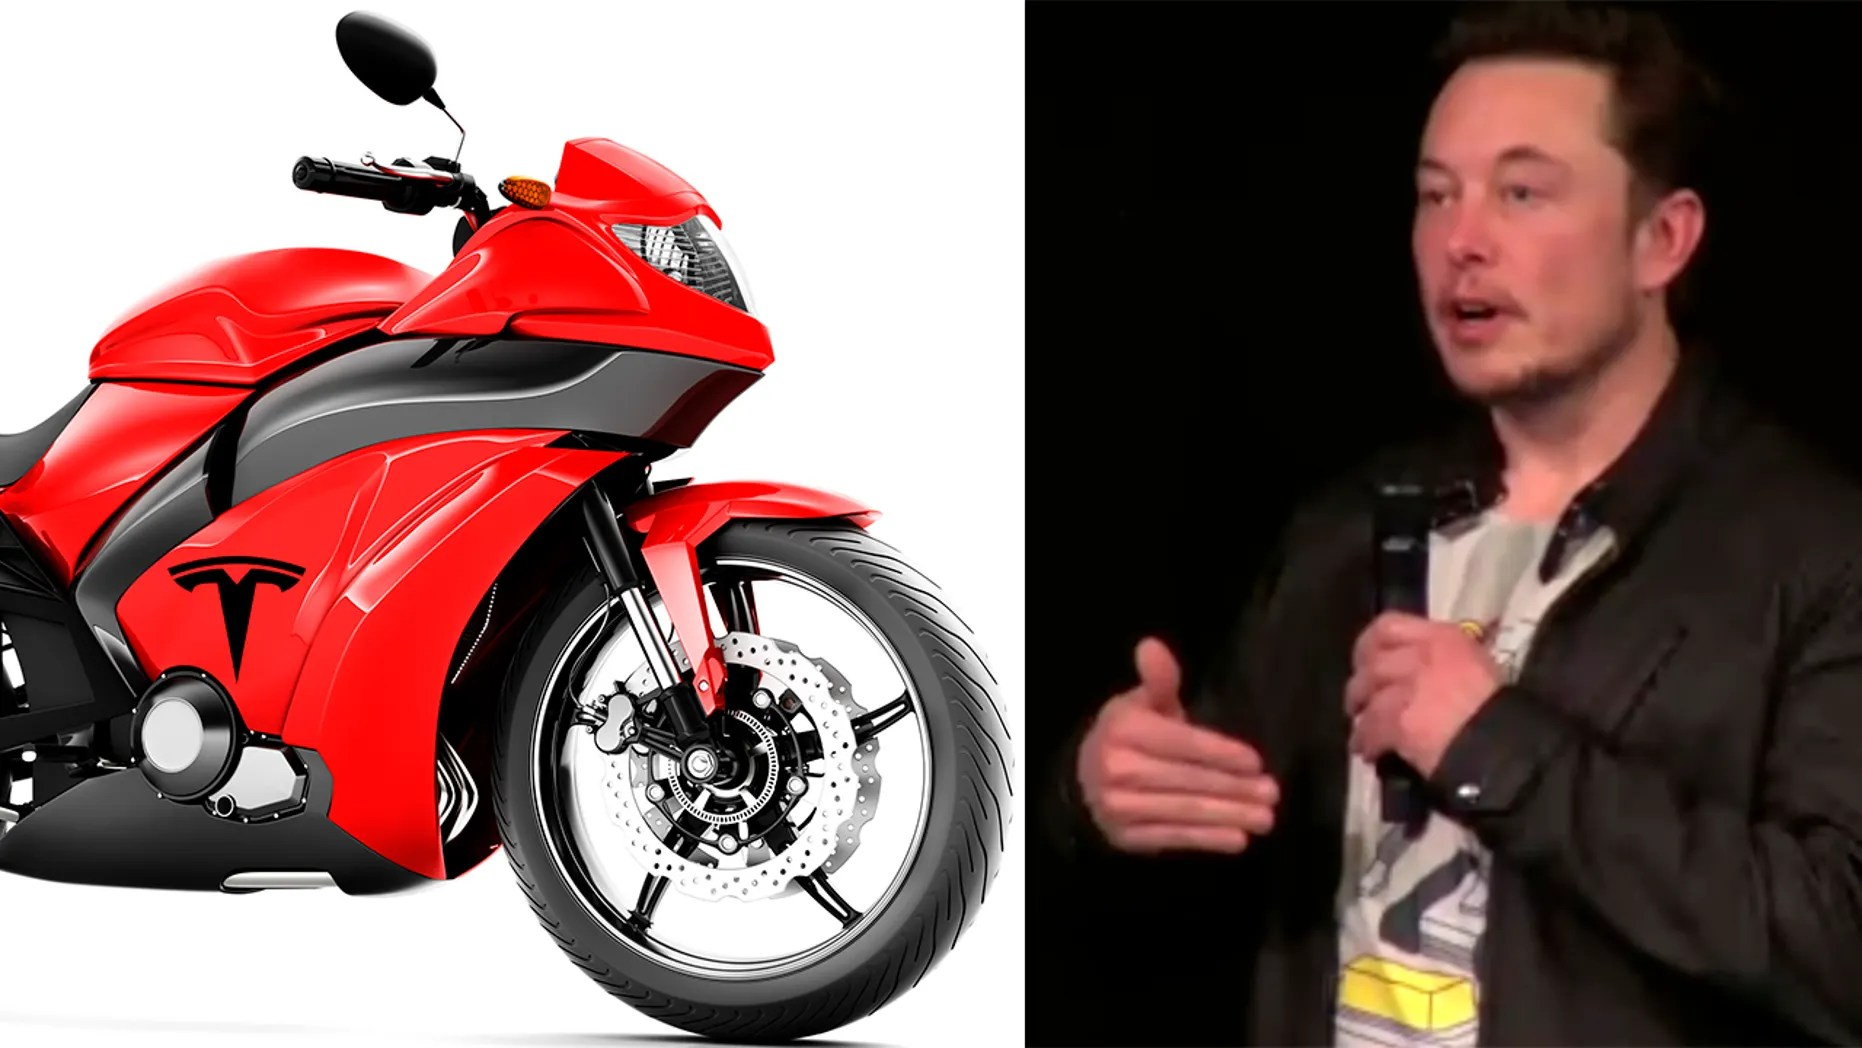 Musk Tesla The Elon Musk Was Almost Killed On A Motorcycle So Tesla Will Never